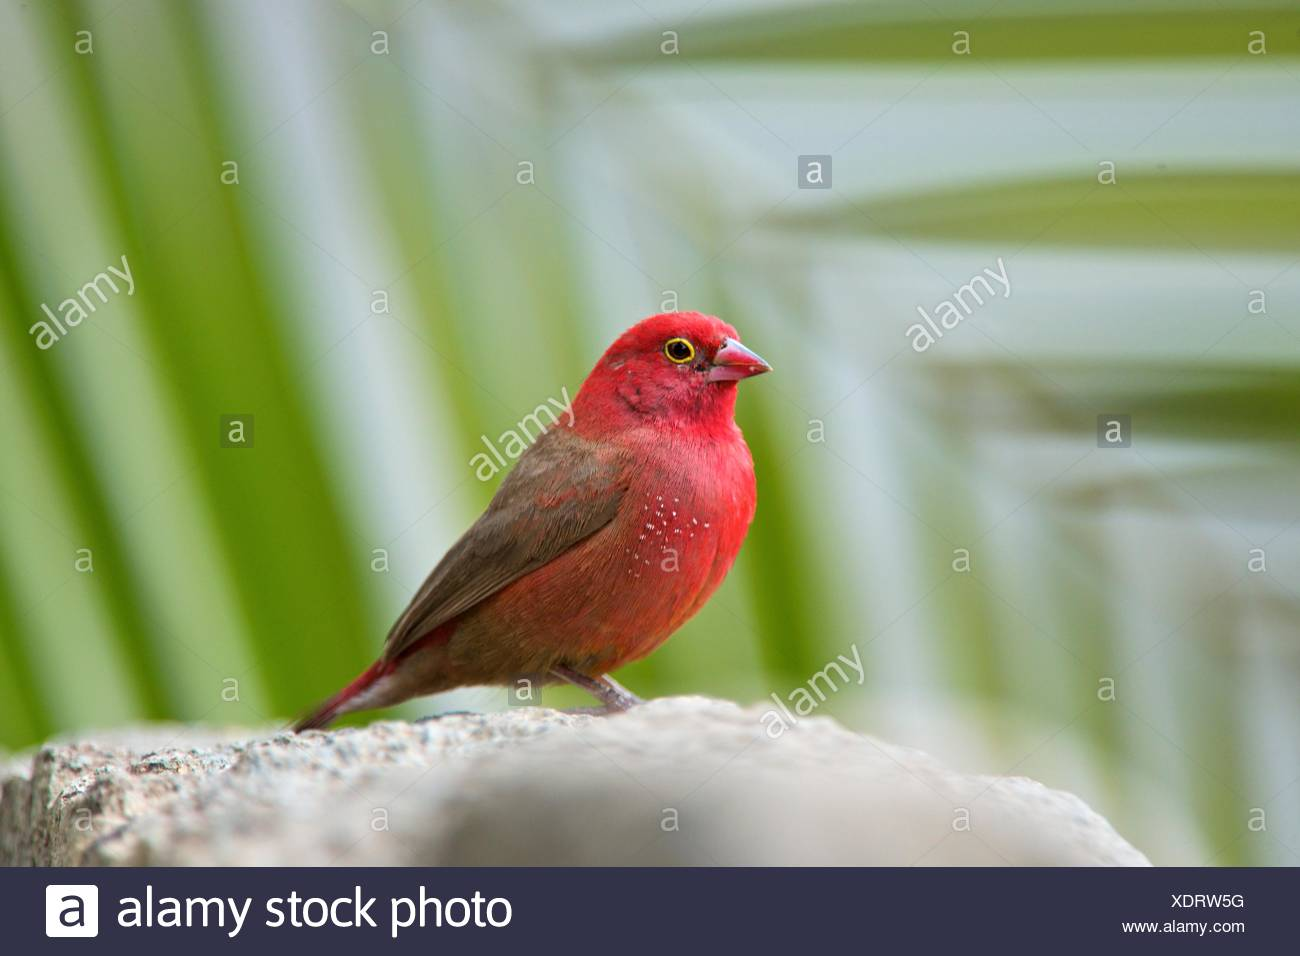 A male red-billed fire-finch perched on a rock in Ethiopia. Stock Photo